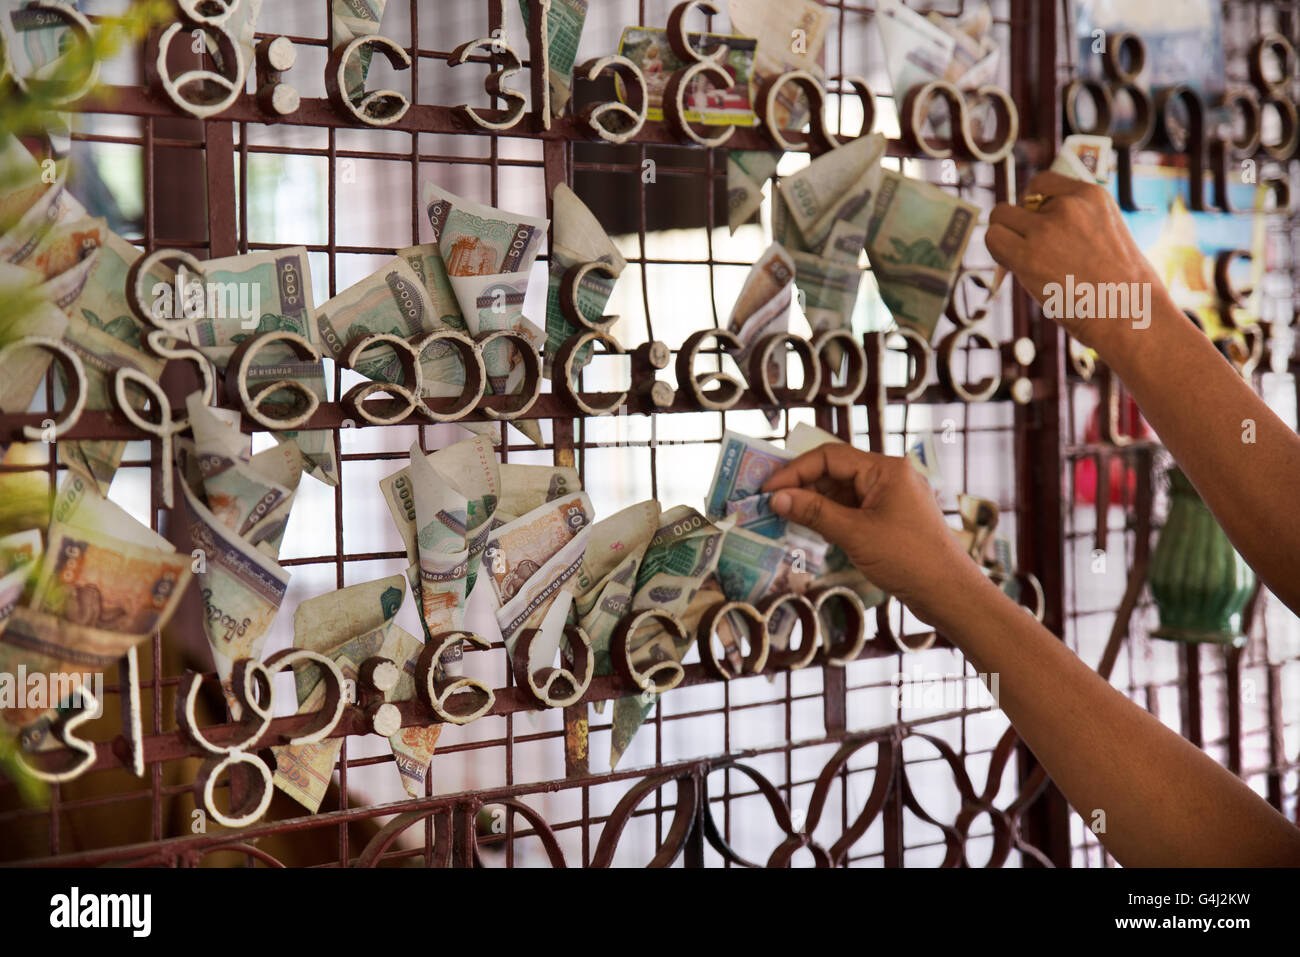 People putting money on the grating of Shwezigon Pagoda, Nyanung-U, Mandalay Region, Myanmar - Stock Image